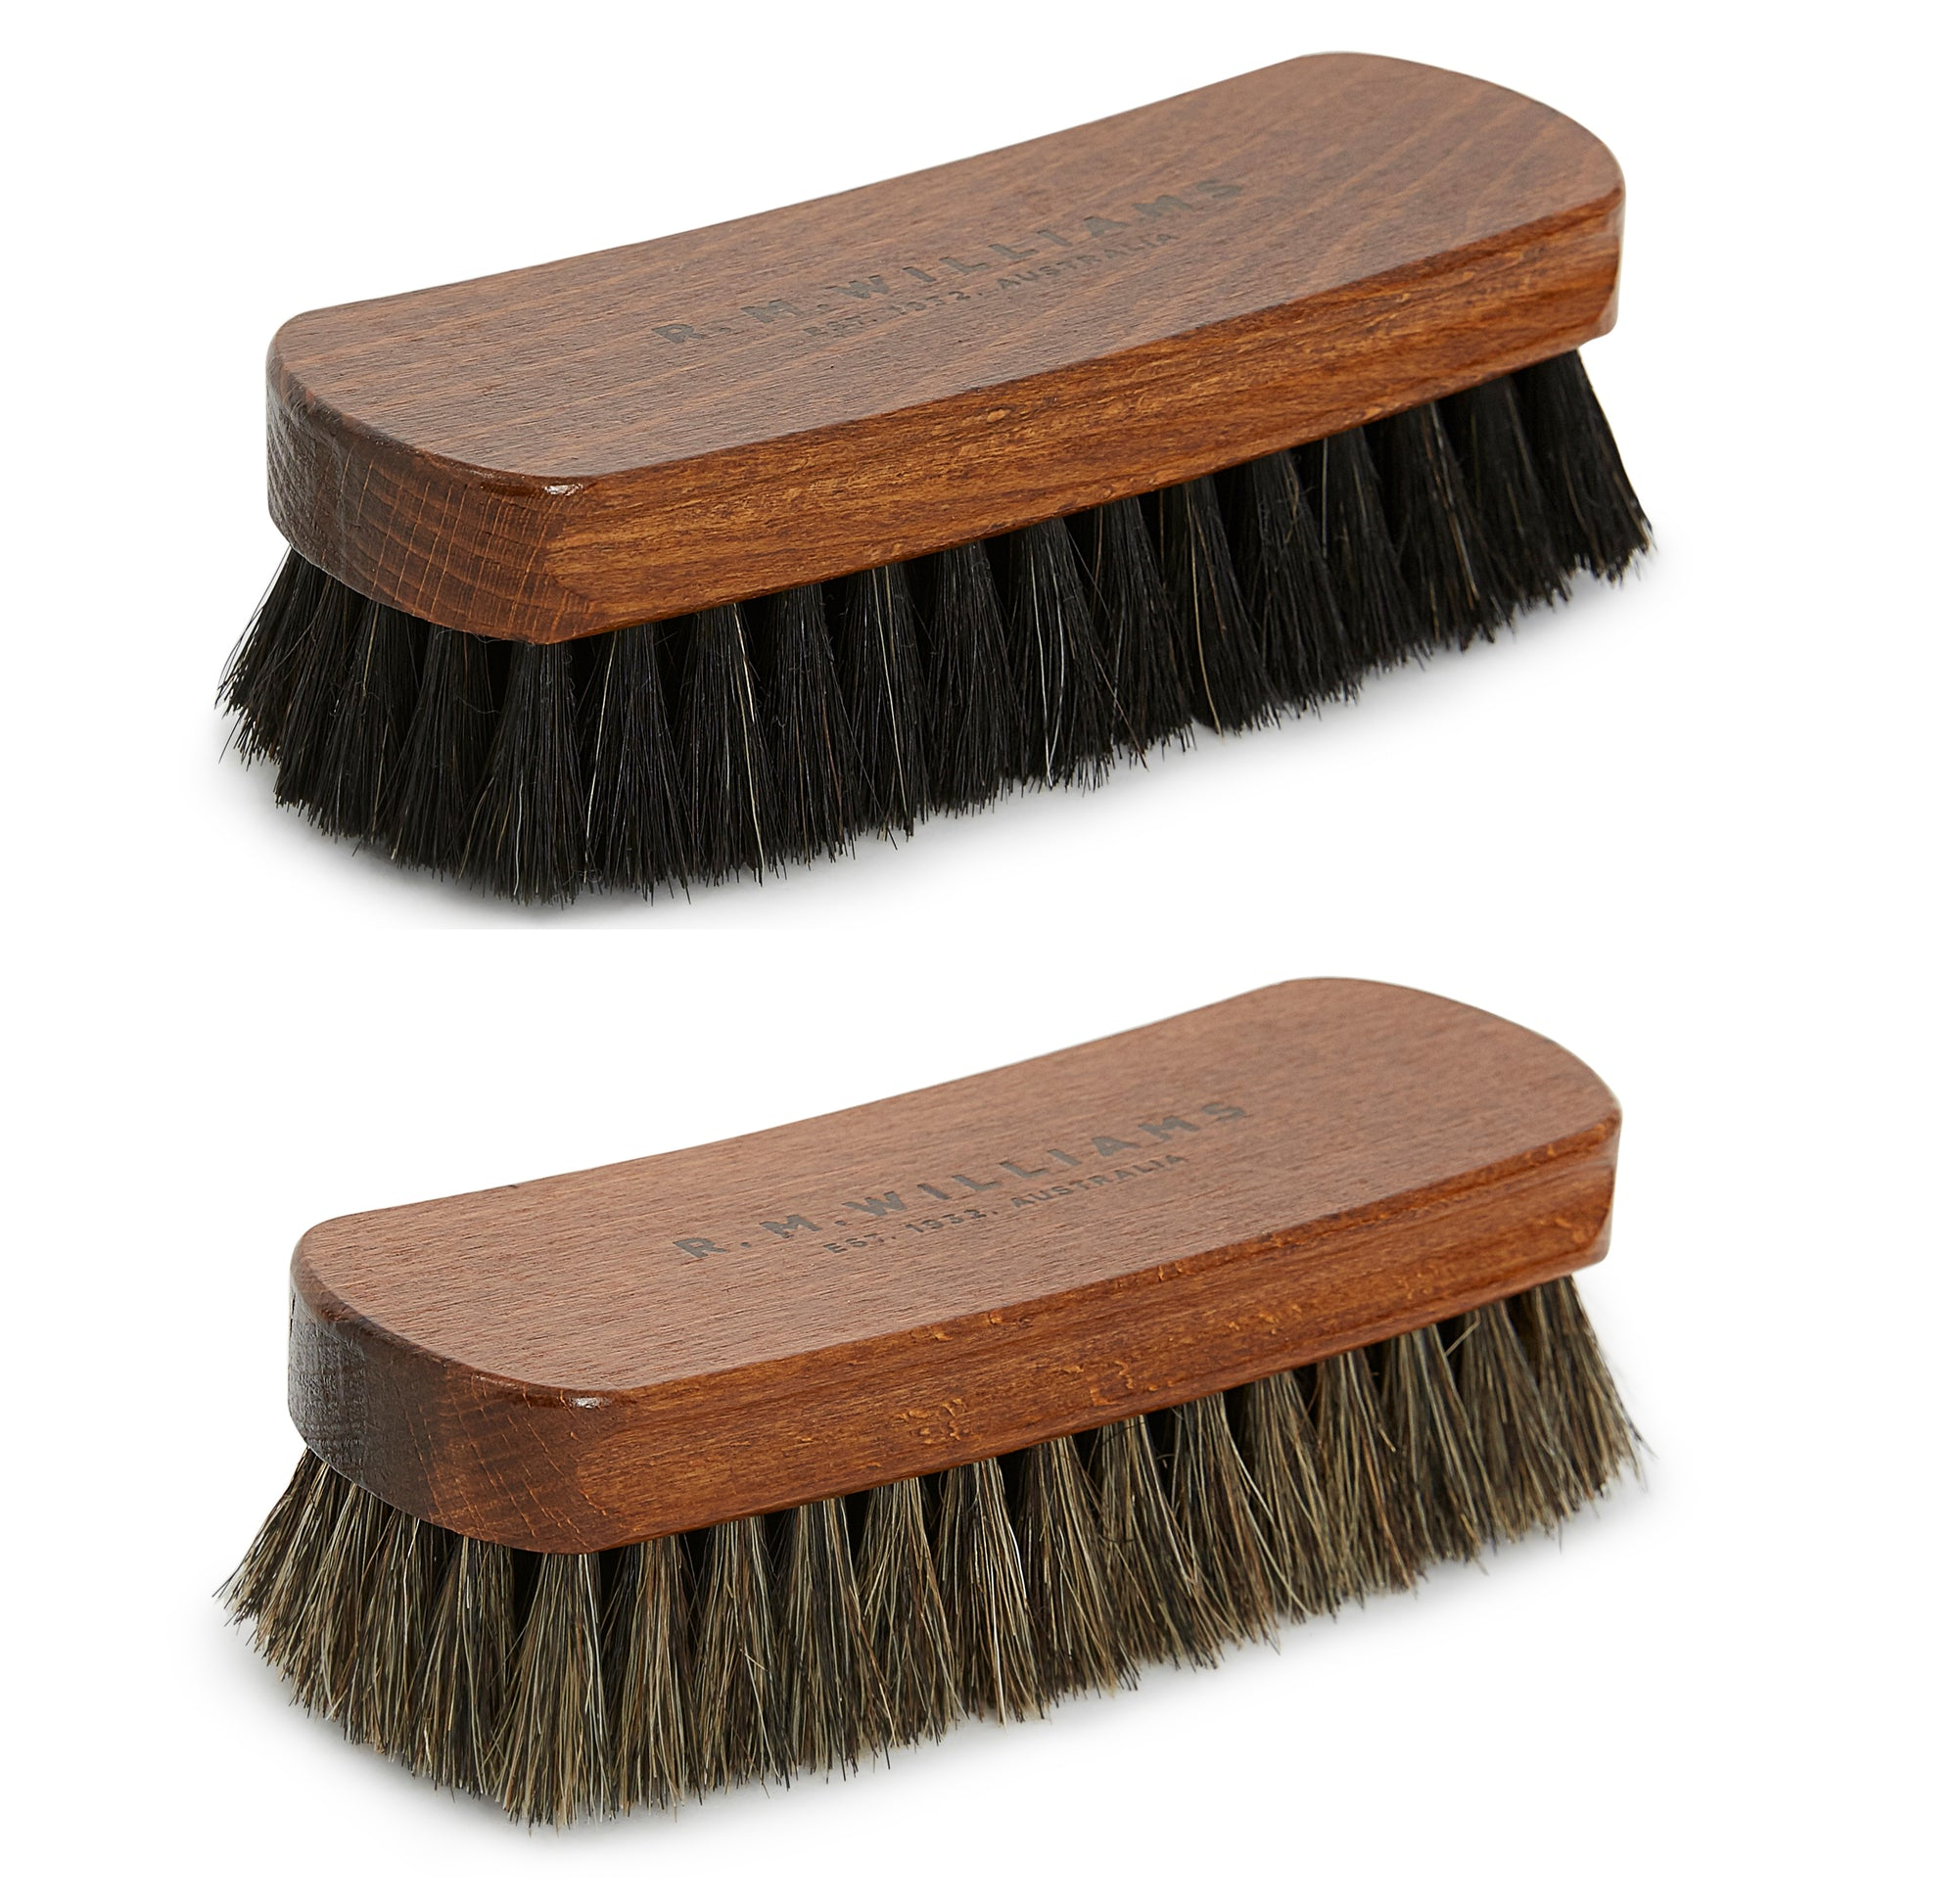 RM Williams Medium Brush (4498501566601)